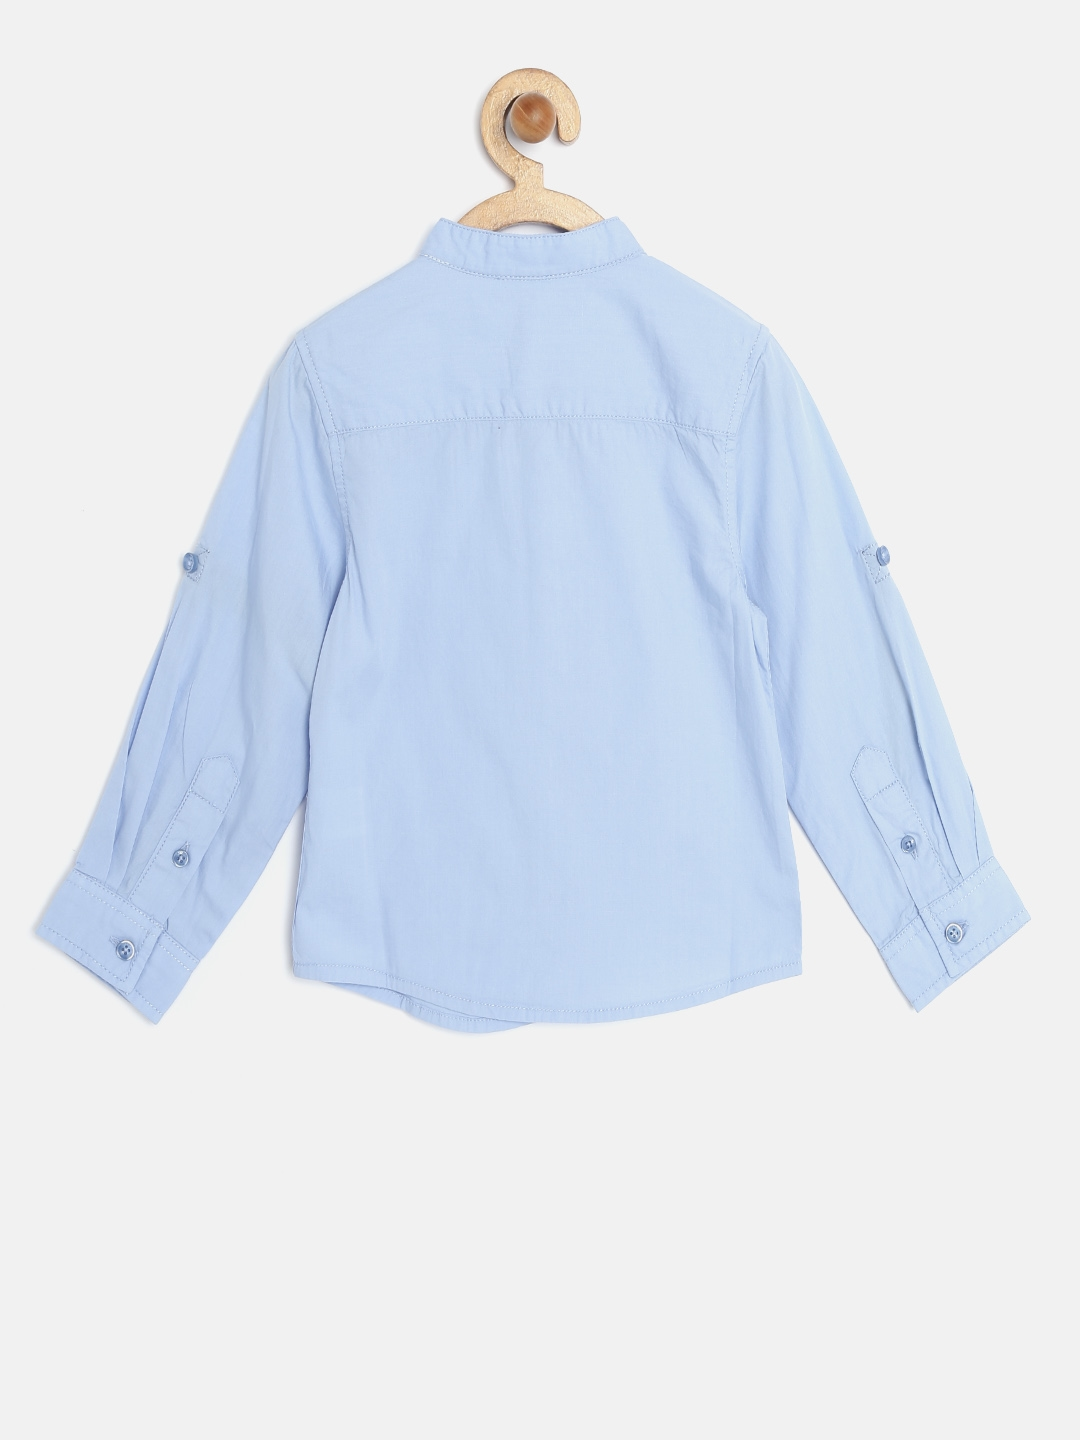 7ca56d5d1 Buy United Colors Of Benetton Boys Blue Solid Shirt - Shirts for ...